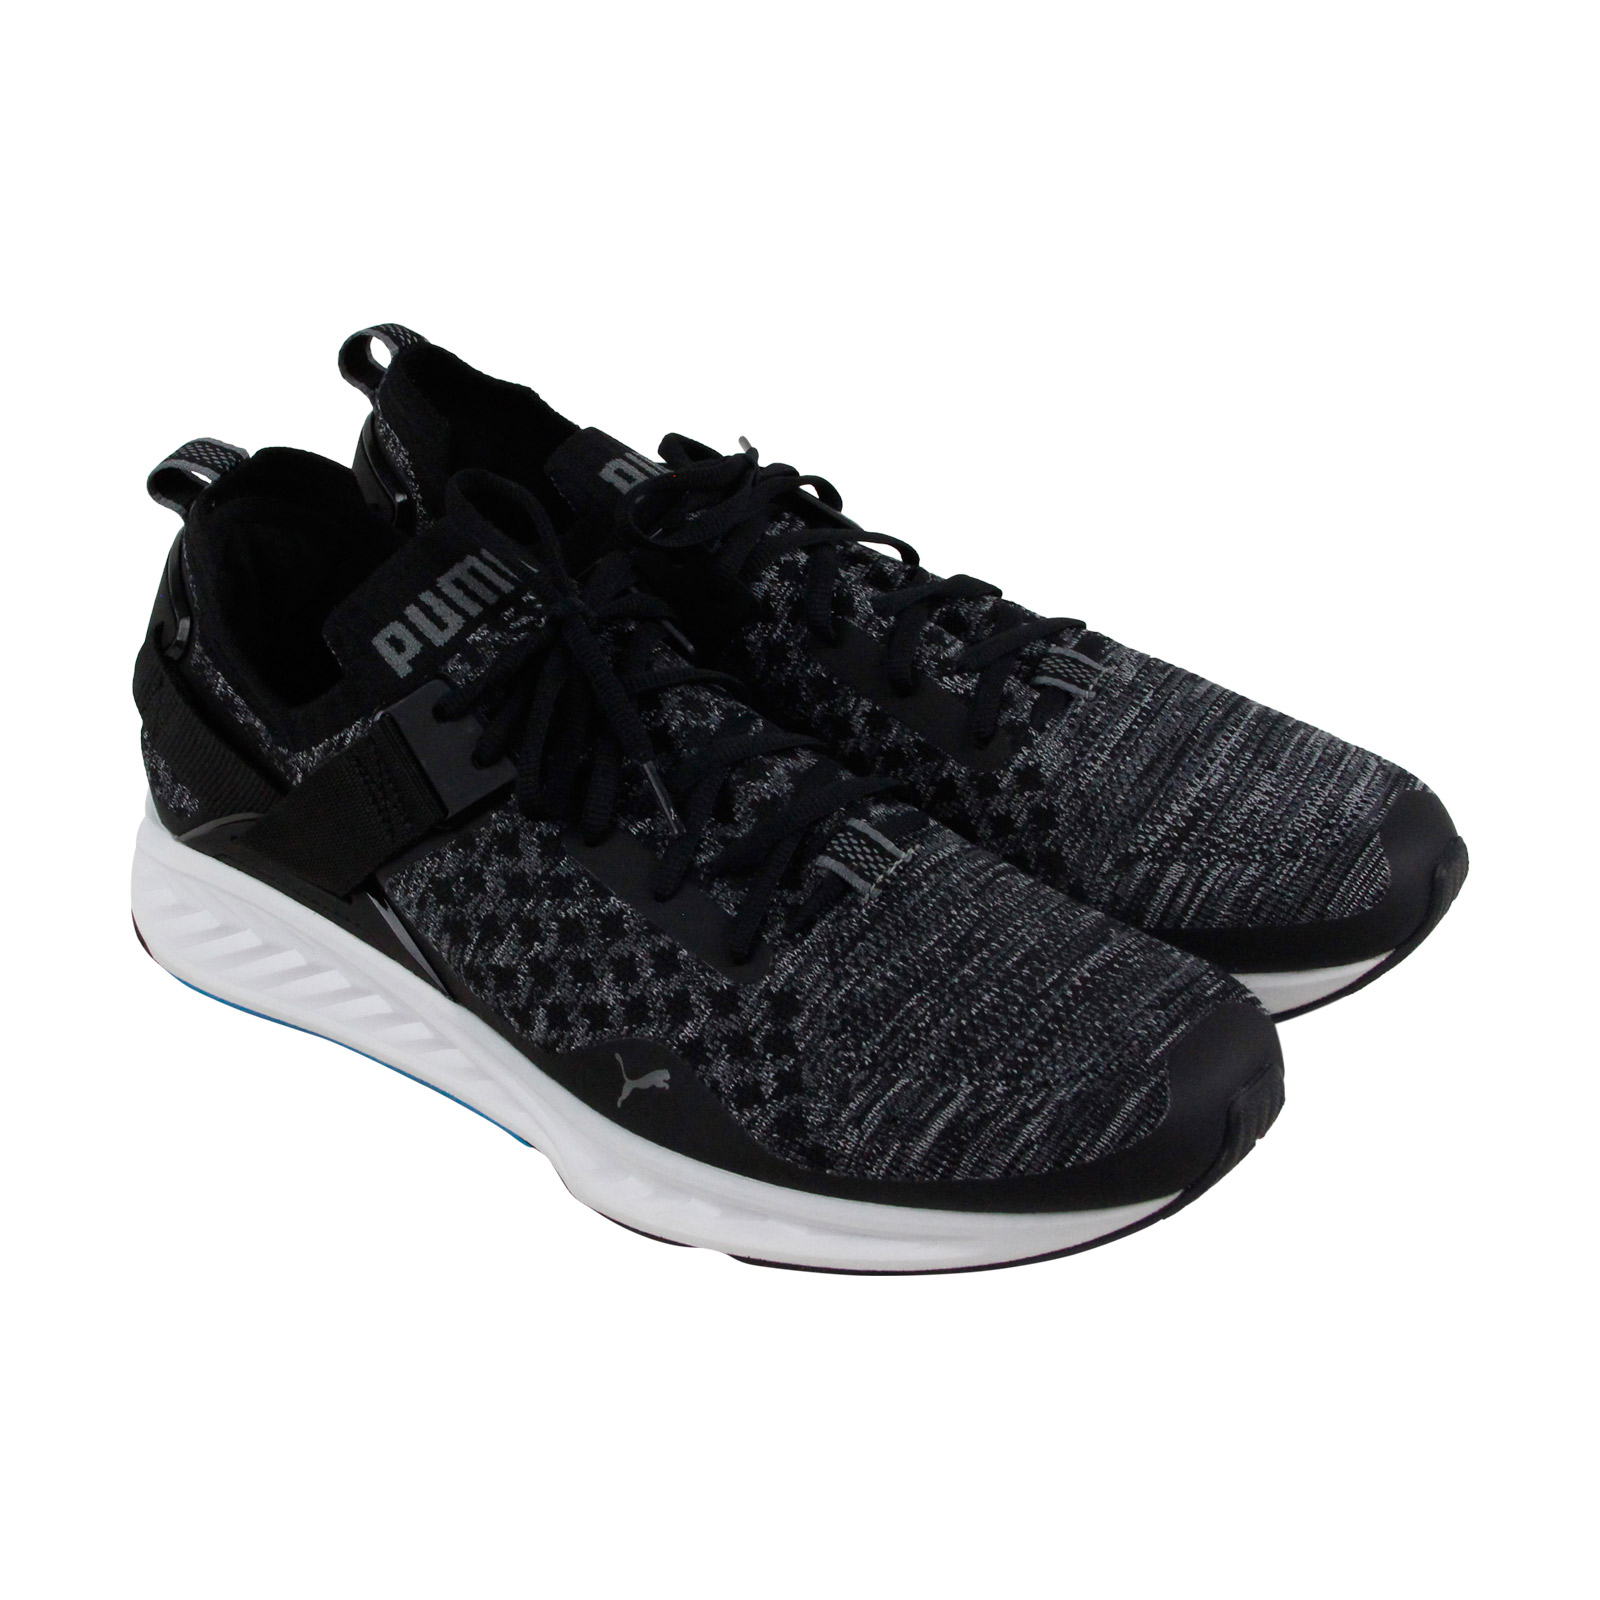 717c064dd9d7 PUMA IGNITE EVOKNIT Lo Mens Black Textile Athletic Lace Up Training Shoes